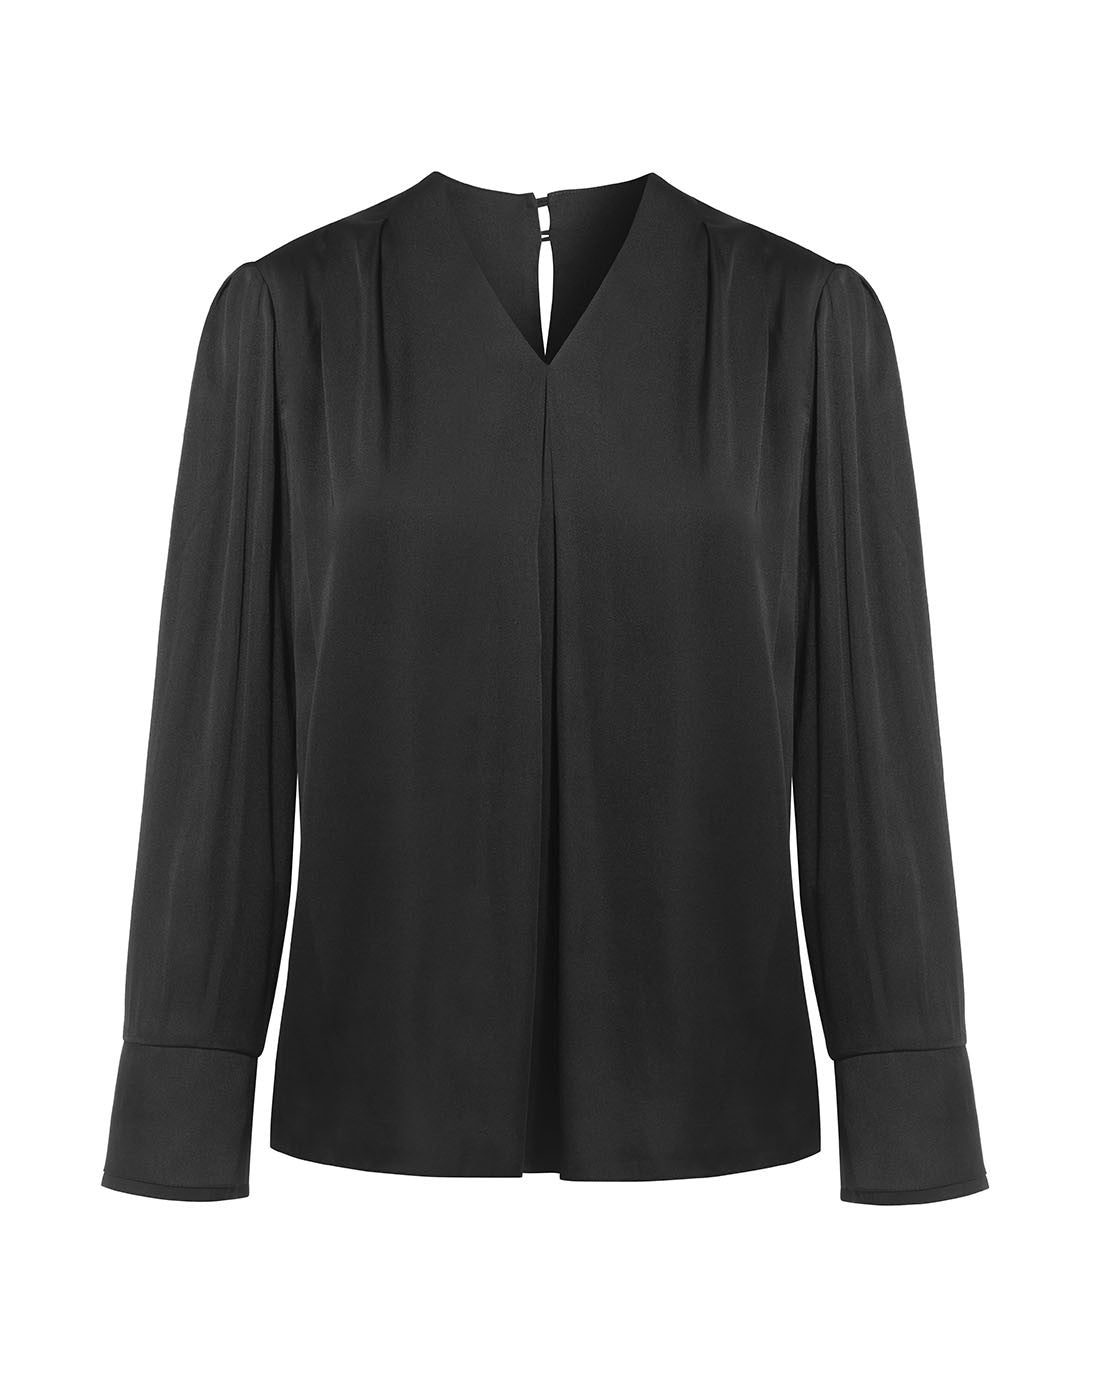 ESTEEM 1 DRAPE DOUBLE-CUFF BLOUSE DARK NAVY